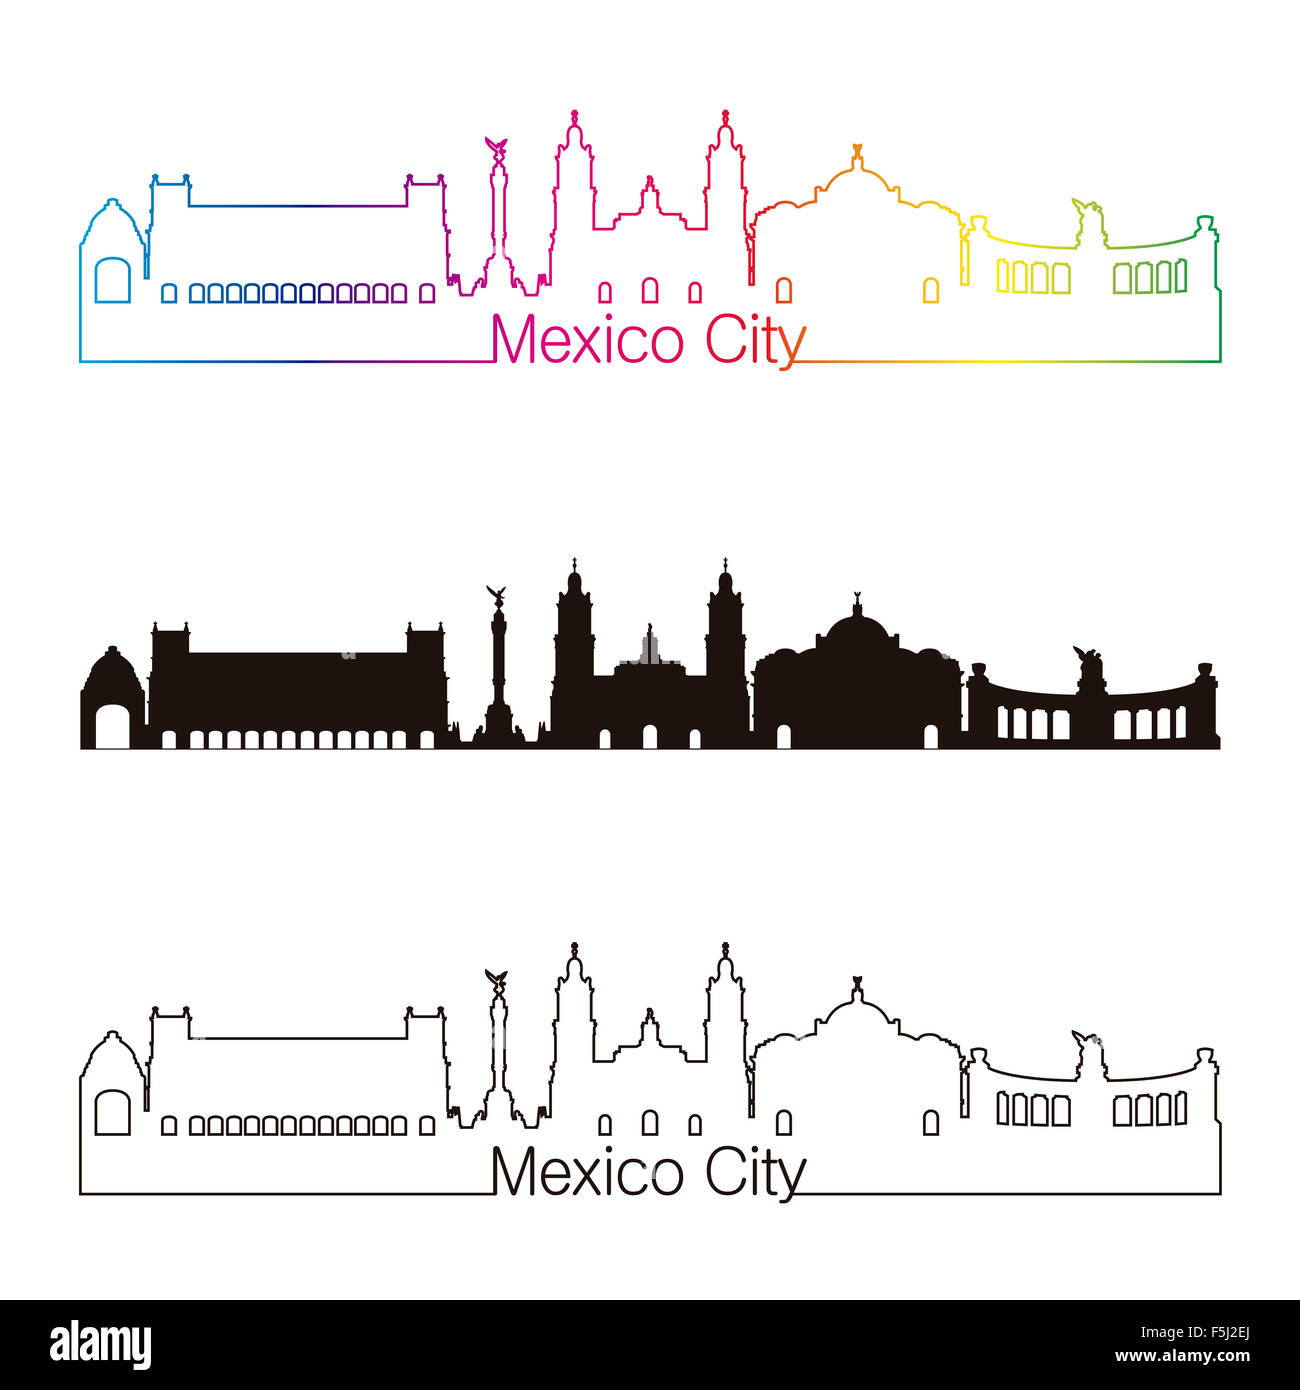 Mexico City skyline linear style with rainbow in editable vector file - Stock Image